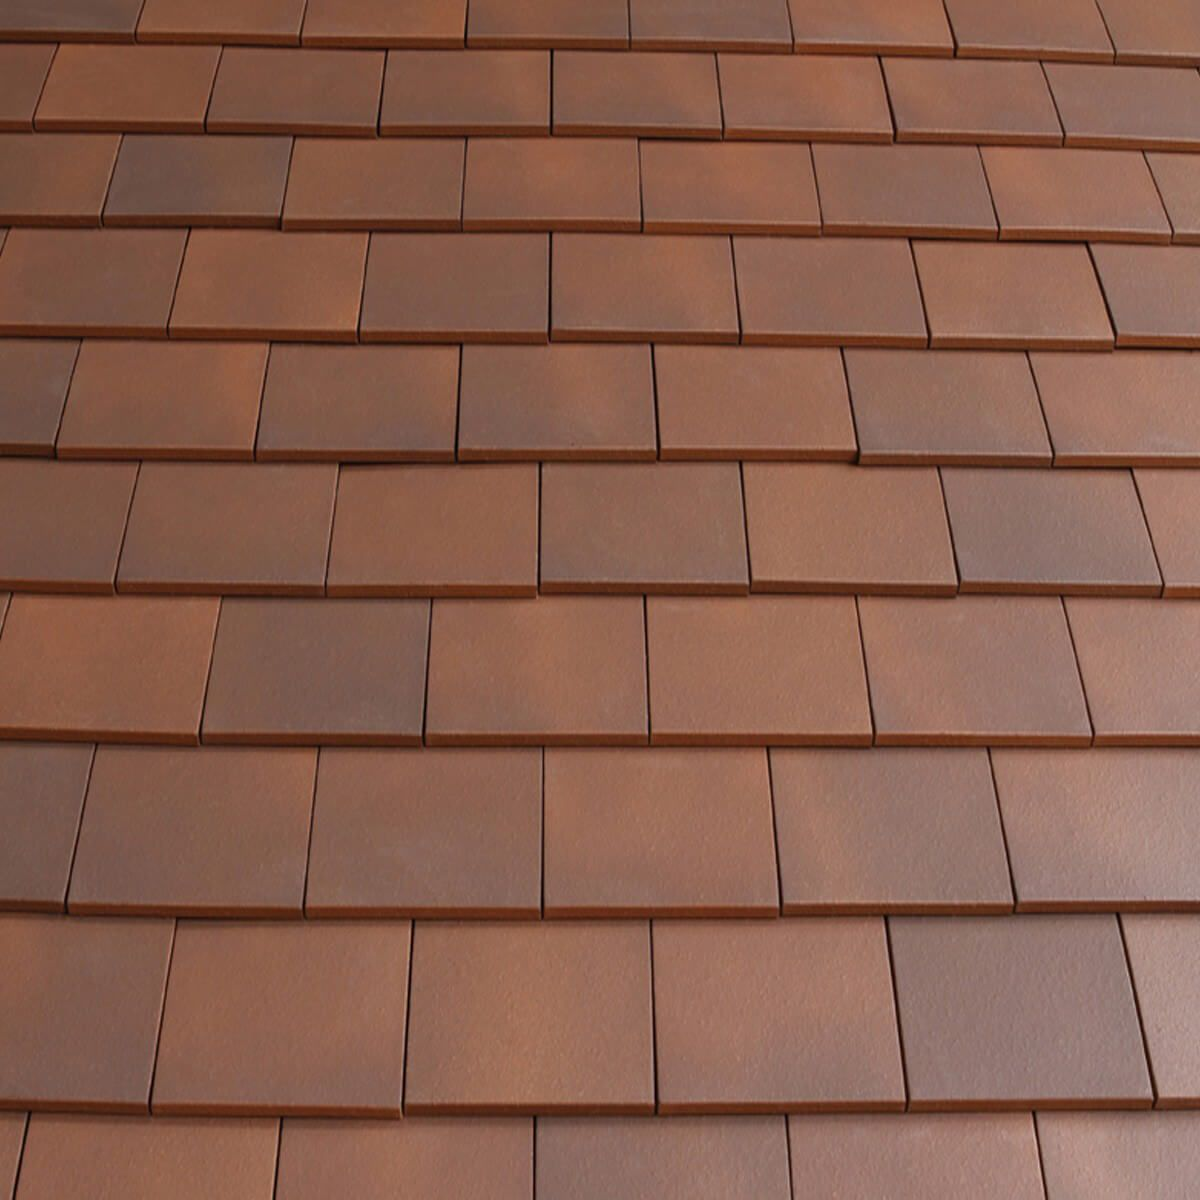 Marley Eternit Acme Single Camber Clay Machine Made Plain Roof Tile Clay Roof Tiles Roof Tiles Marley Roof Tiles